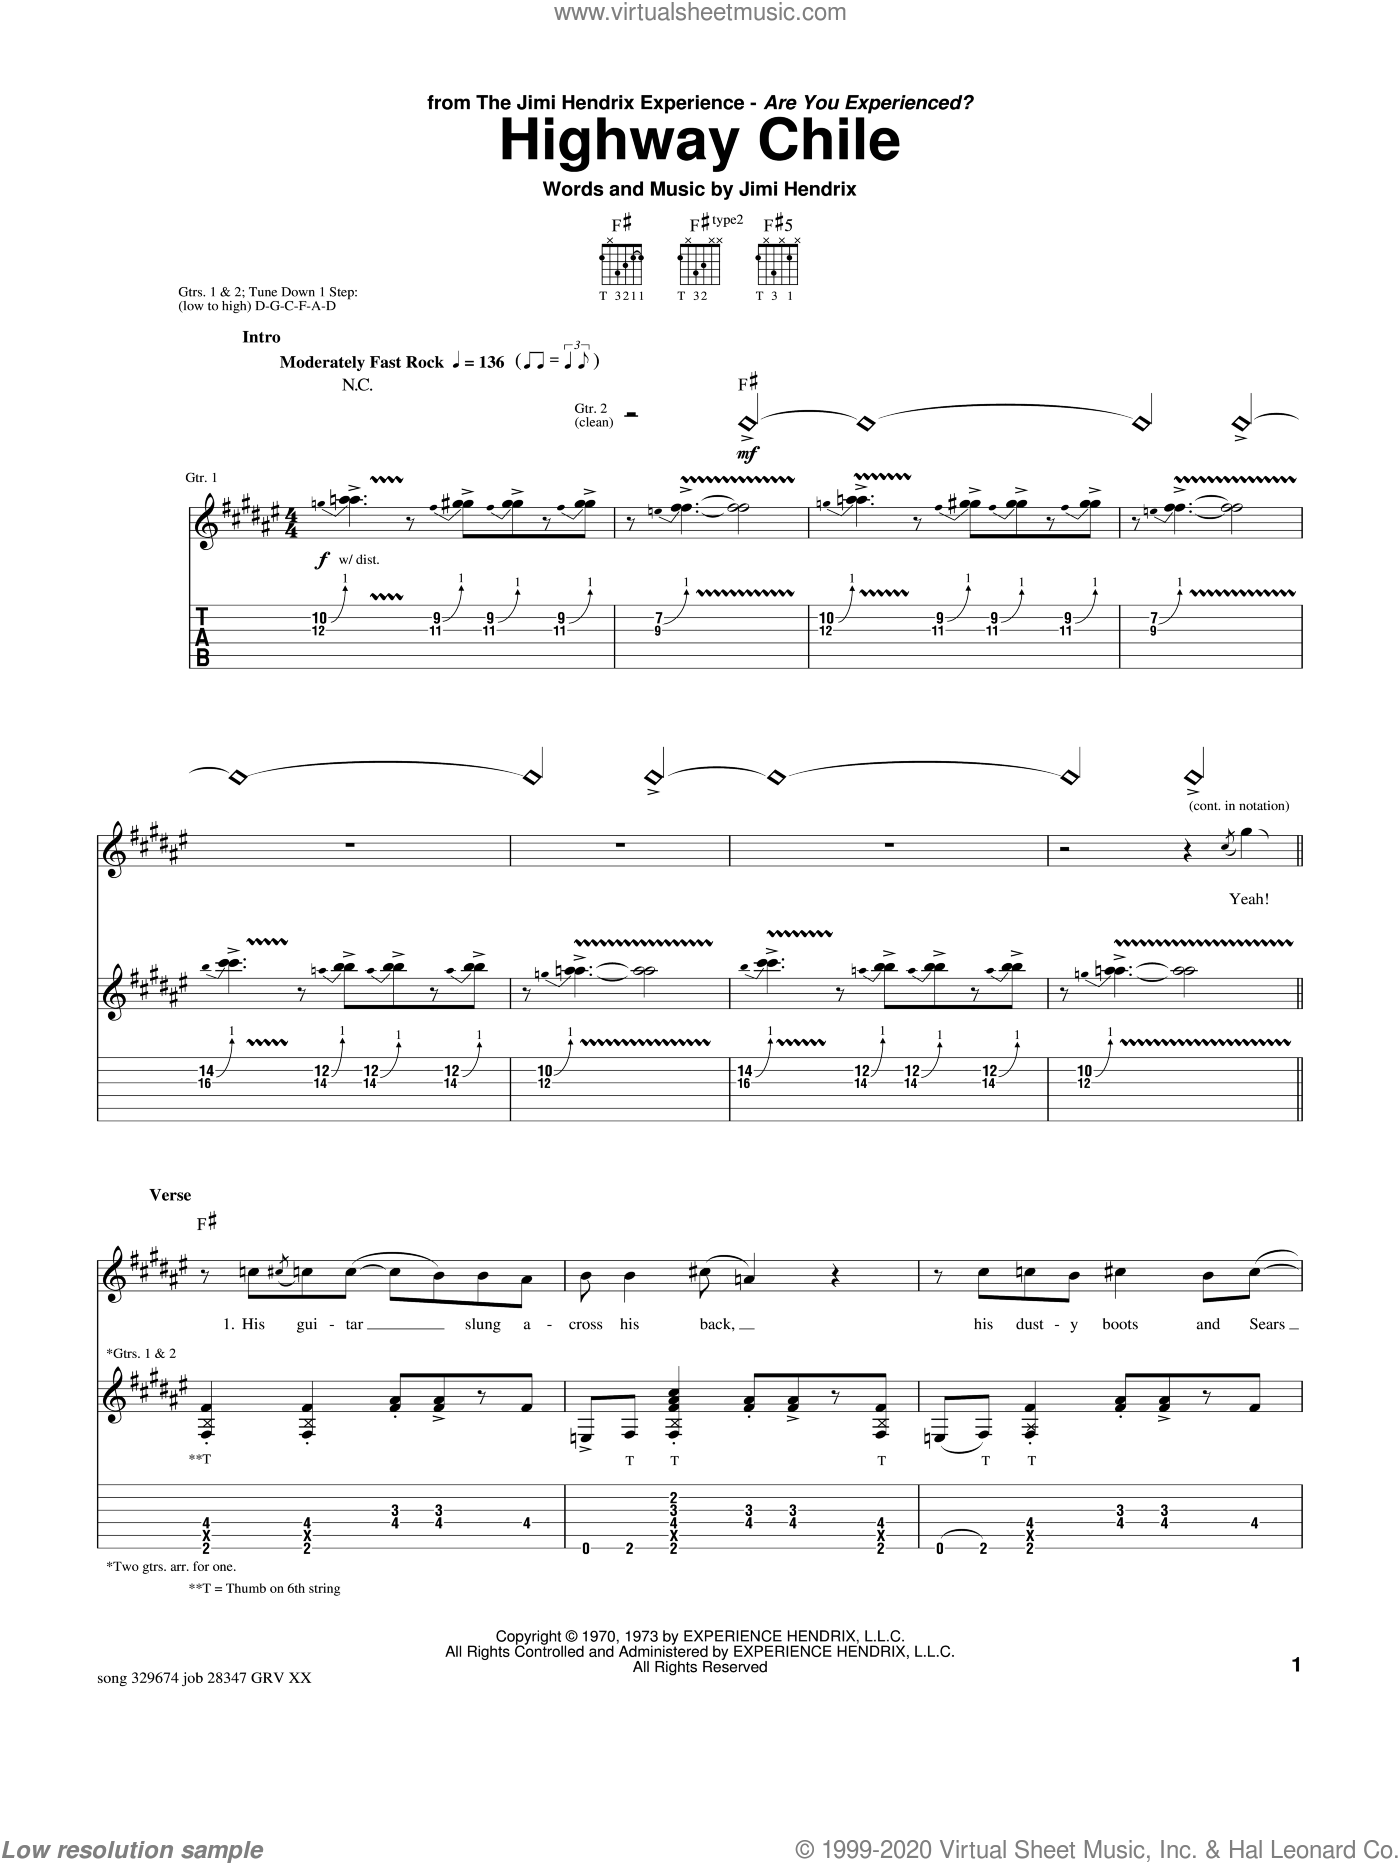 Highway Chile sheet music for guitar (tablature) by Jimi Hendrix